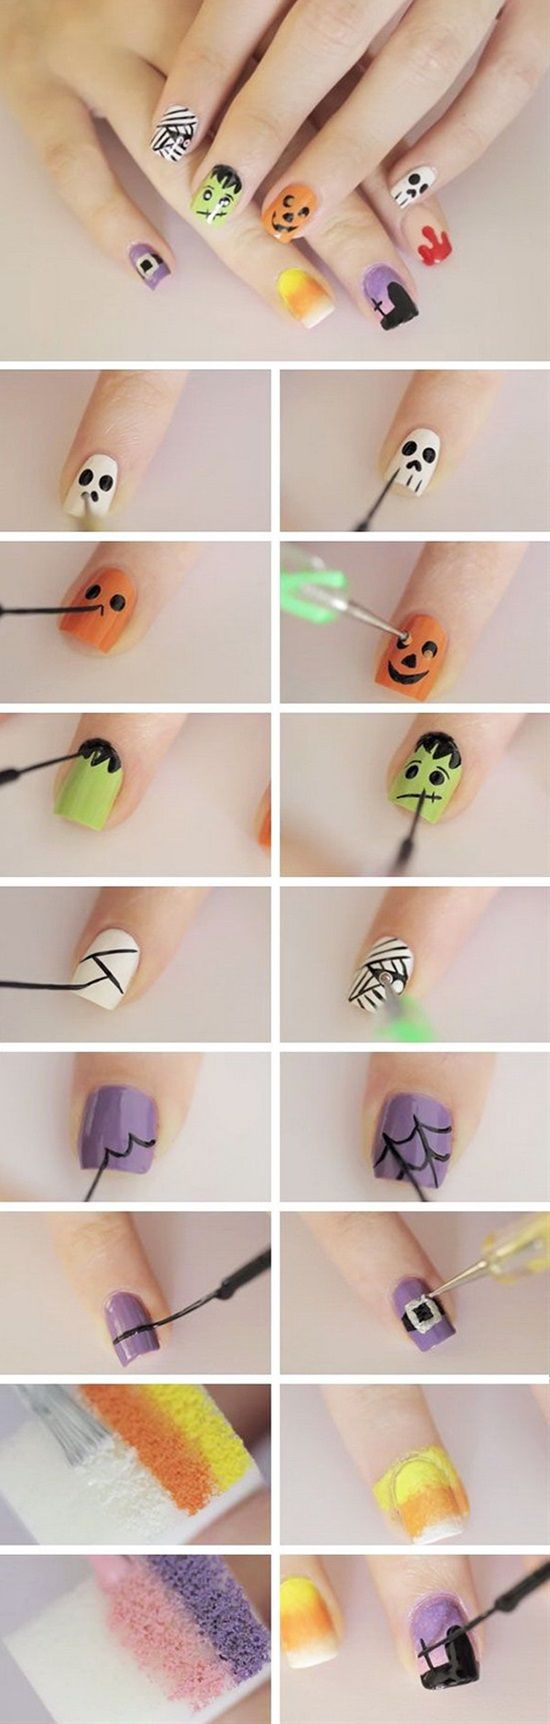 10 nice easy nail art tutorials for beginners diseos de uas 10 nice easy nail art tutorials for beginners solutioingenieria Image collections